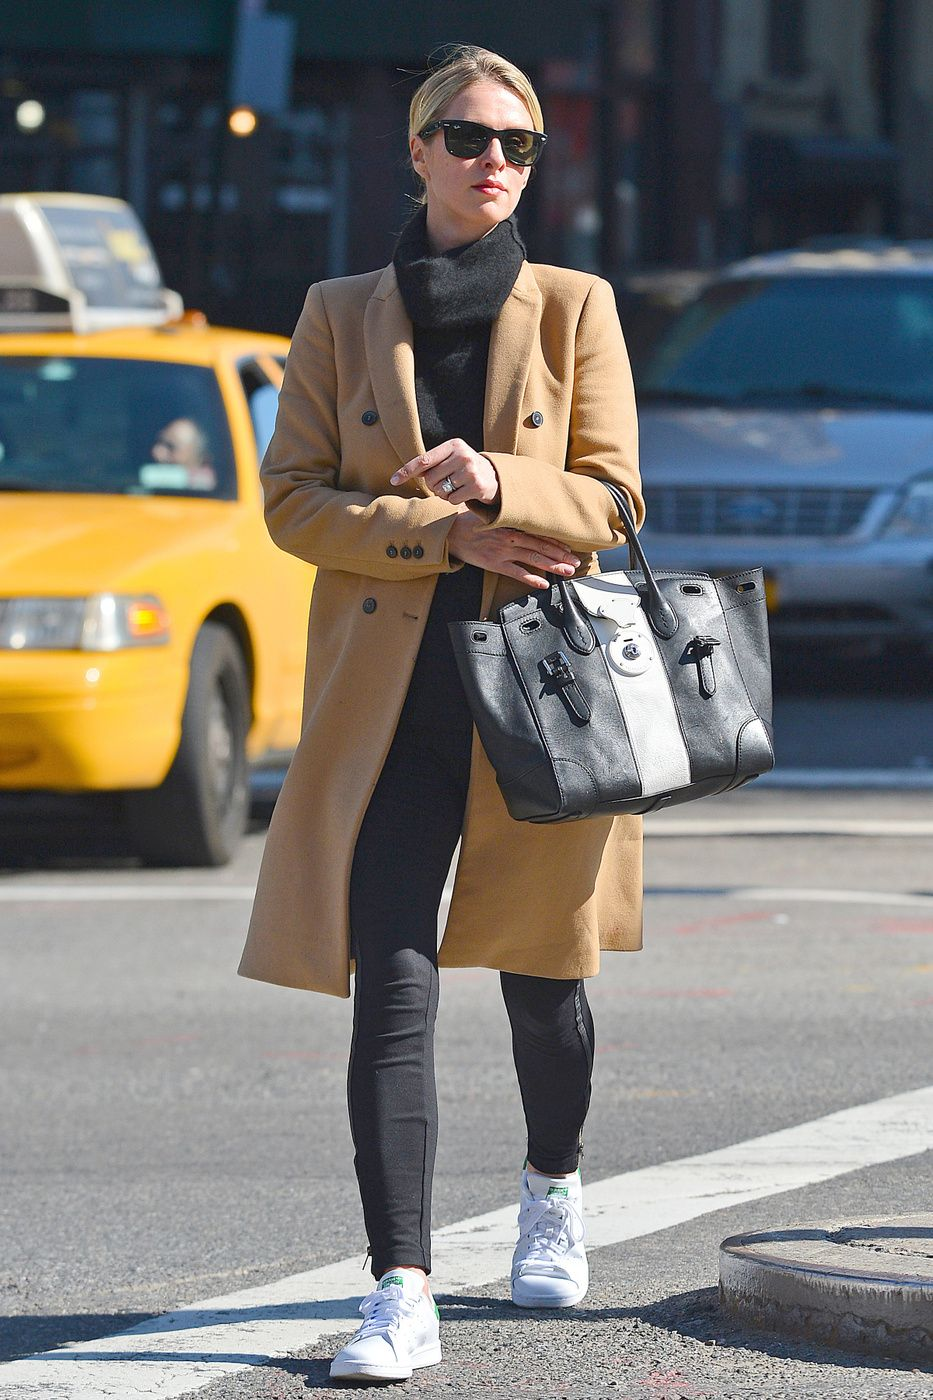 fdaf6839 Classic Cool: Nicky Hilton Rothschild's Camel Coat and White ...